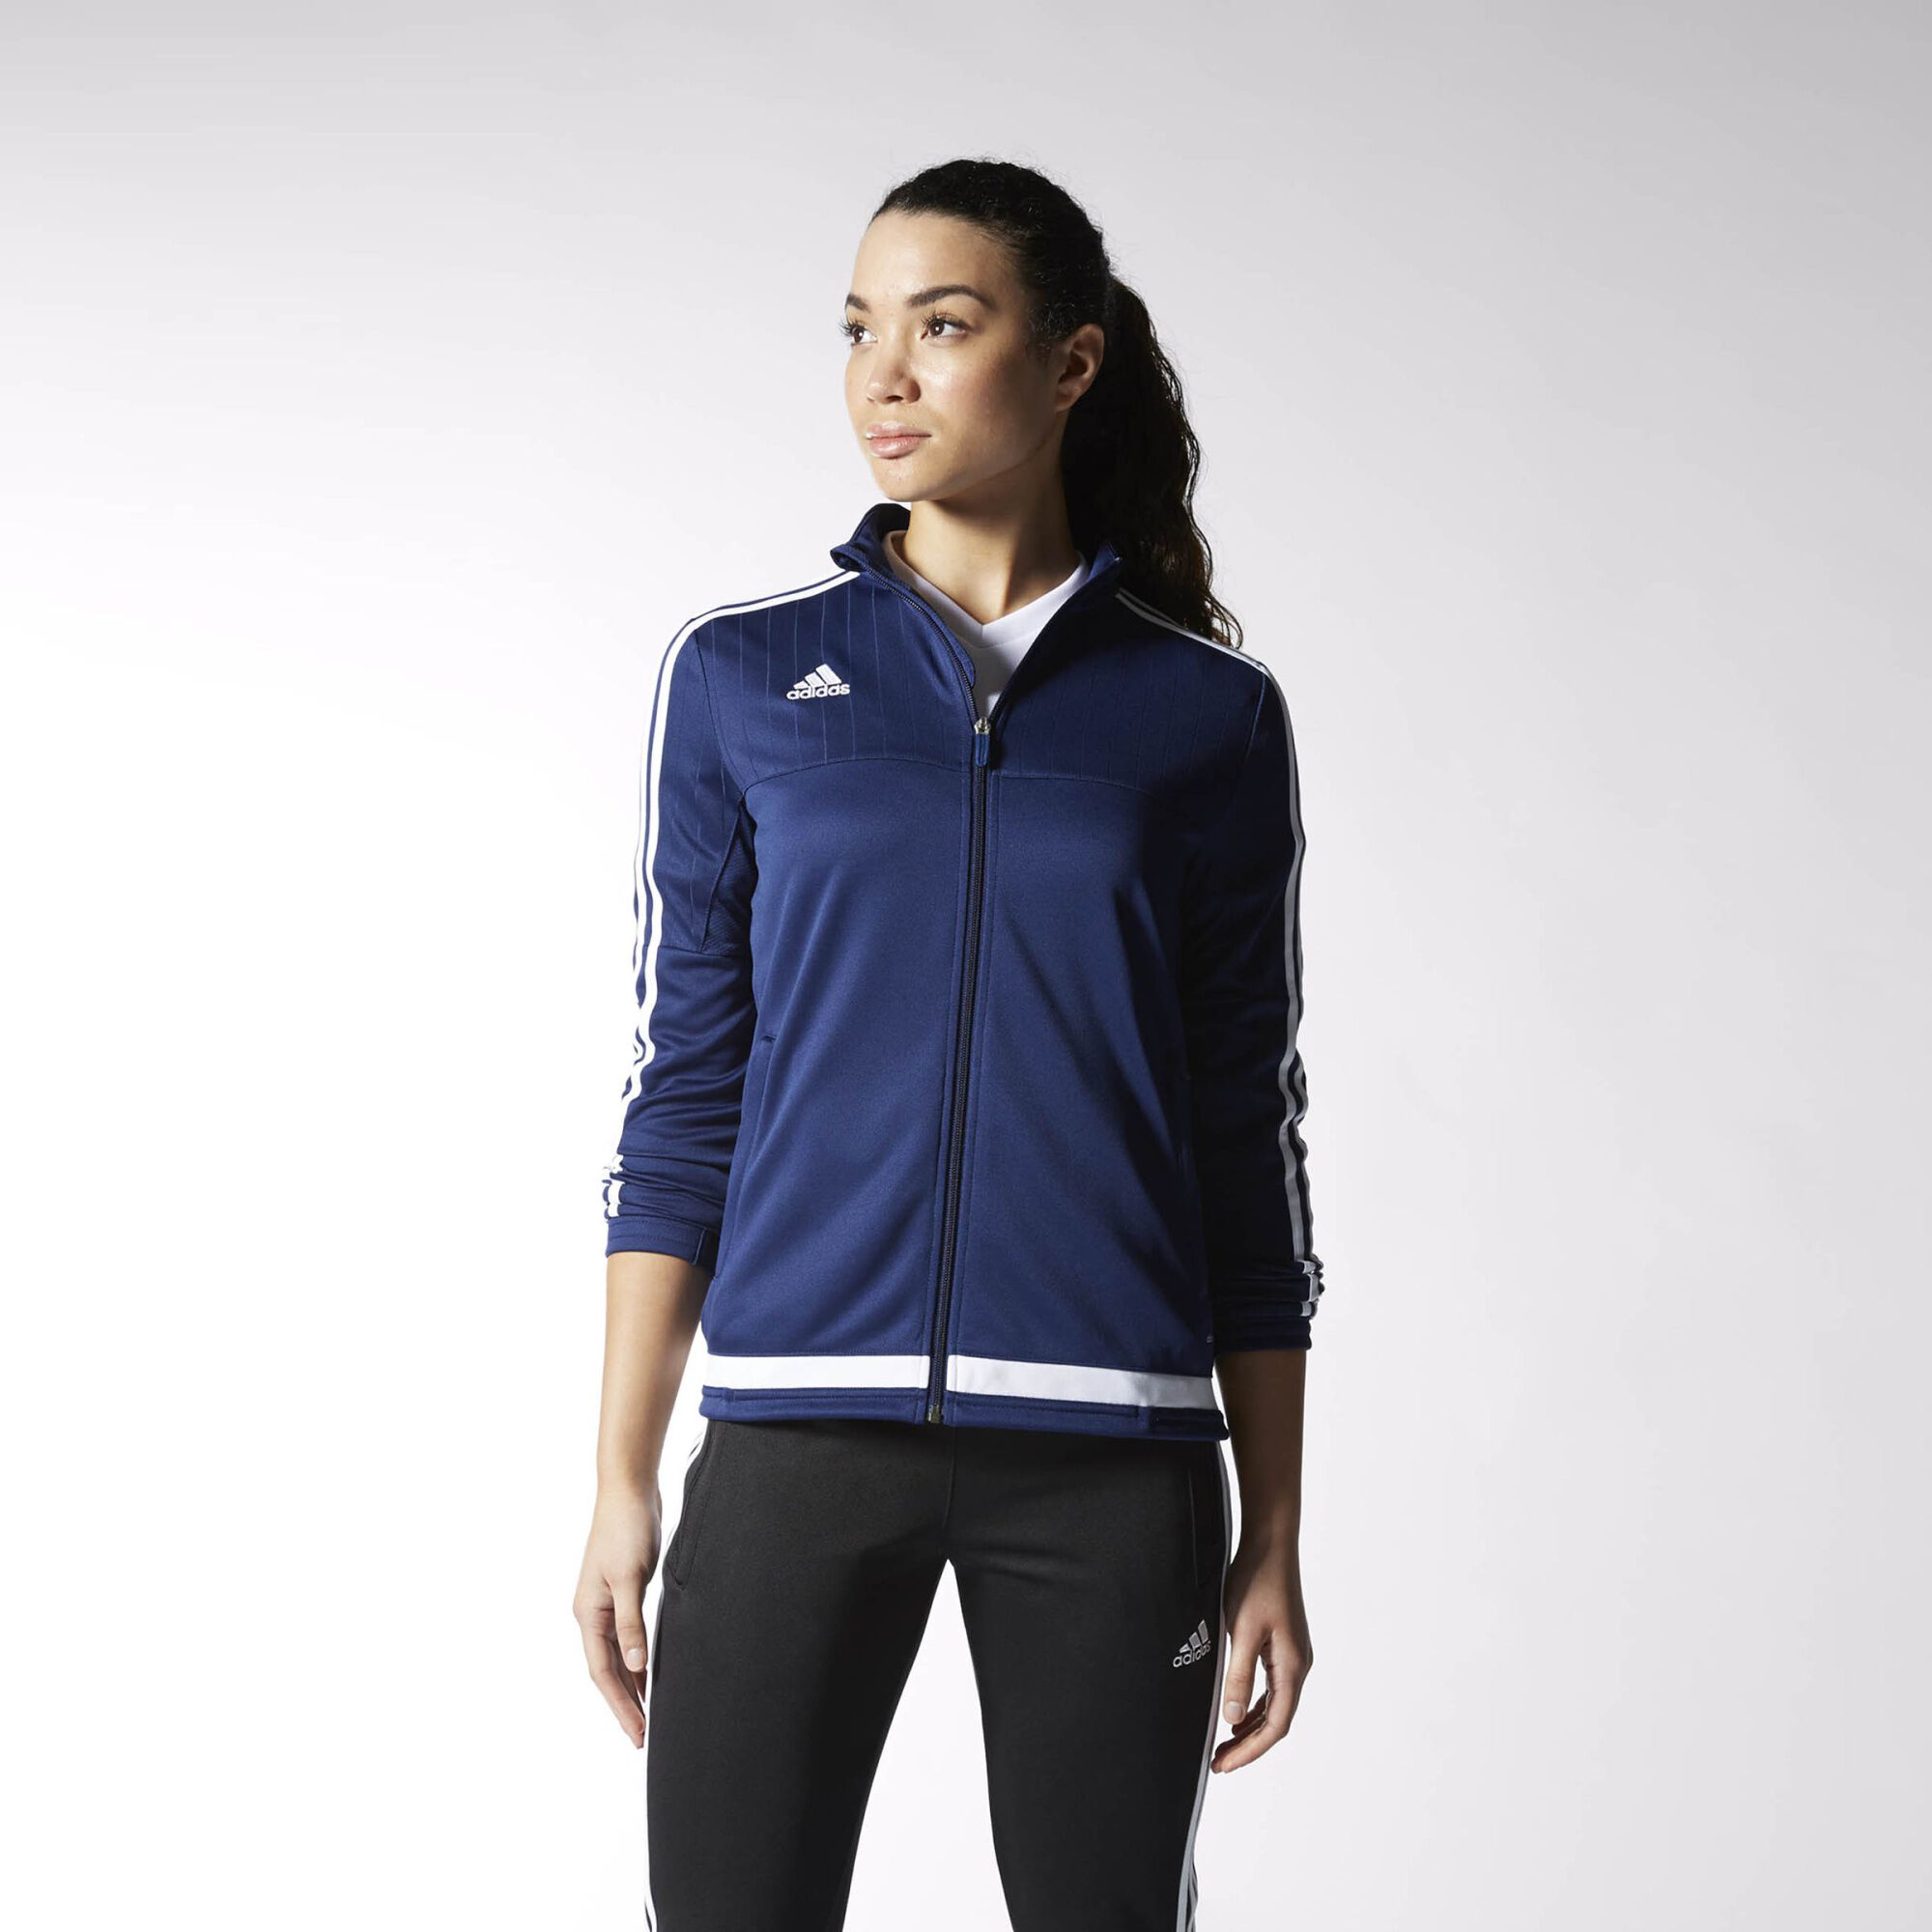 adidas womens tennis clothing,adipower weightlifting shoes